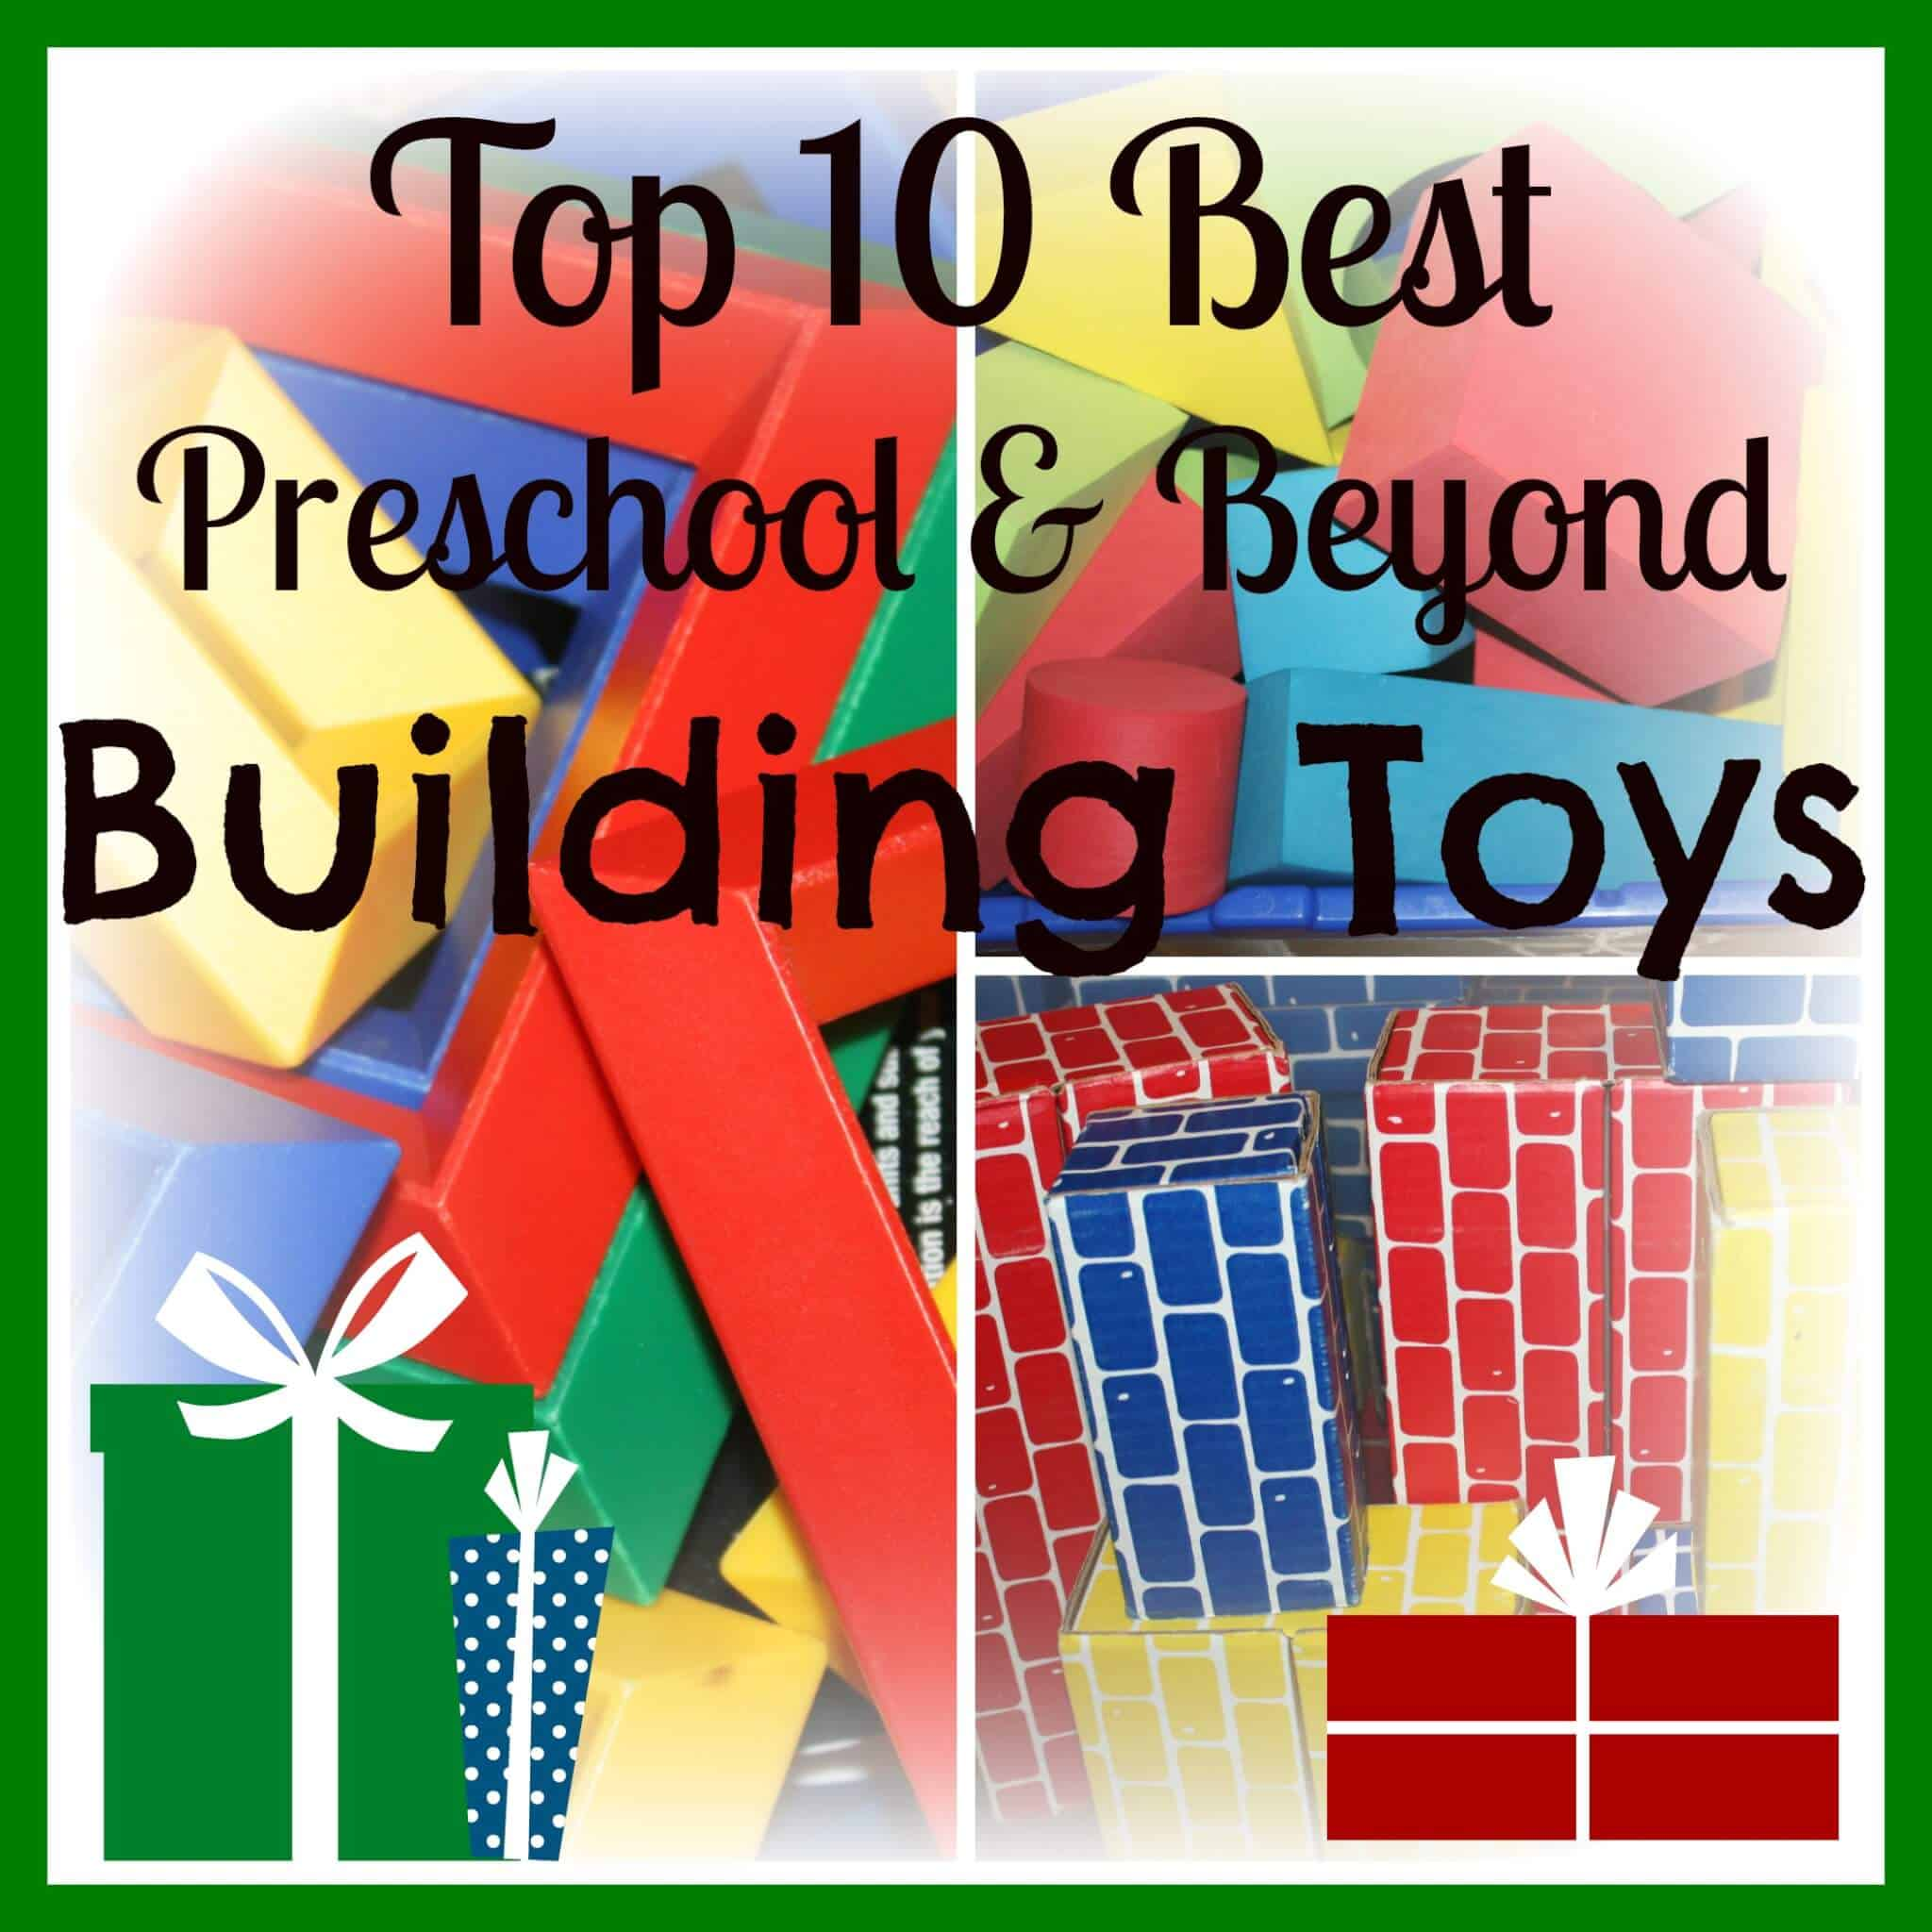 Top 10 Toys For 2013 : Top best building toys tuesday holiday lists